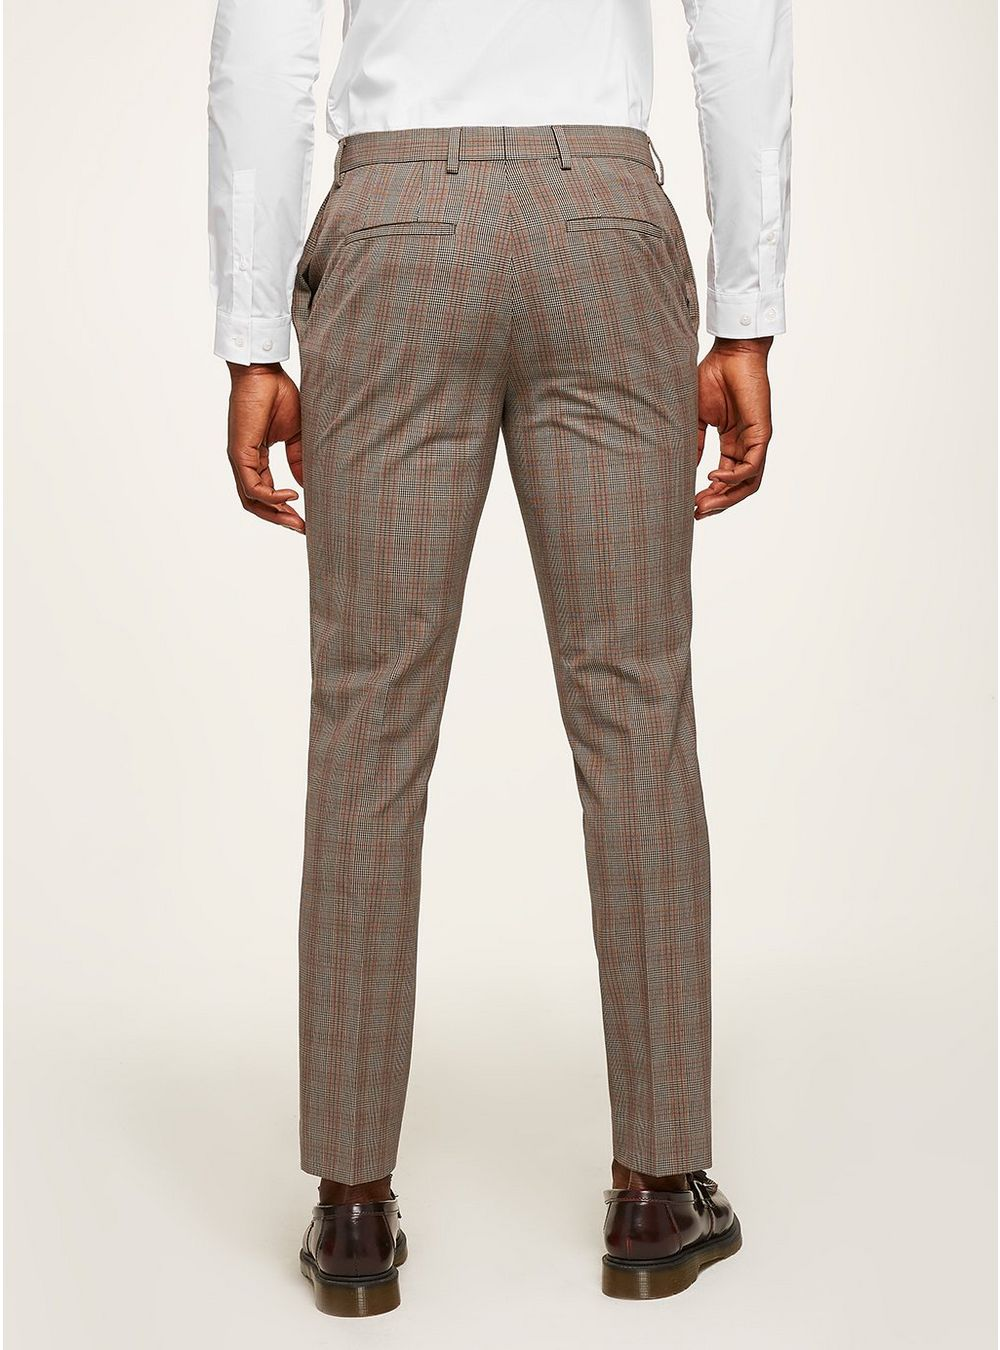 Brown suit trousers brown check muscle suit trousers - shop all sale - sale - topman ZIPLIWR